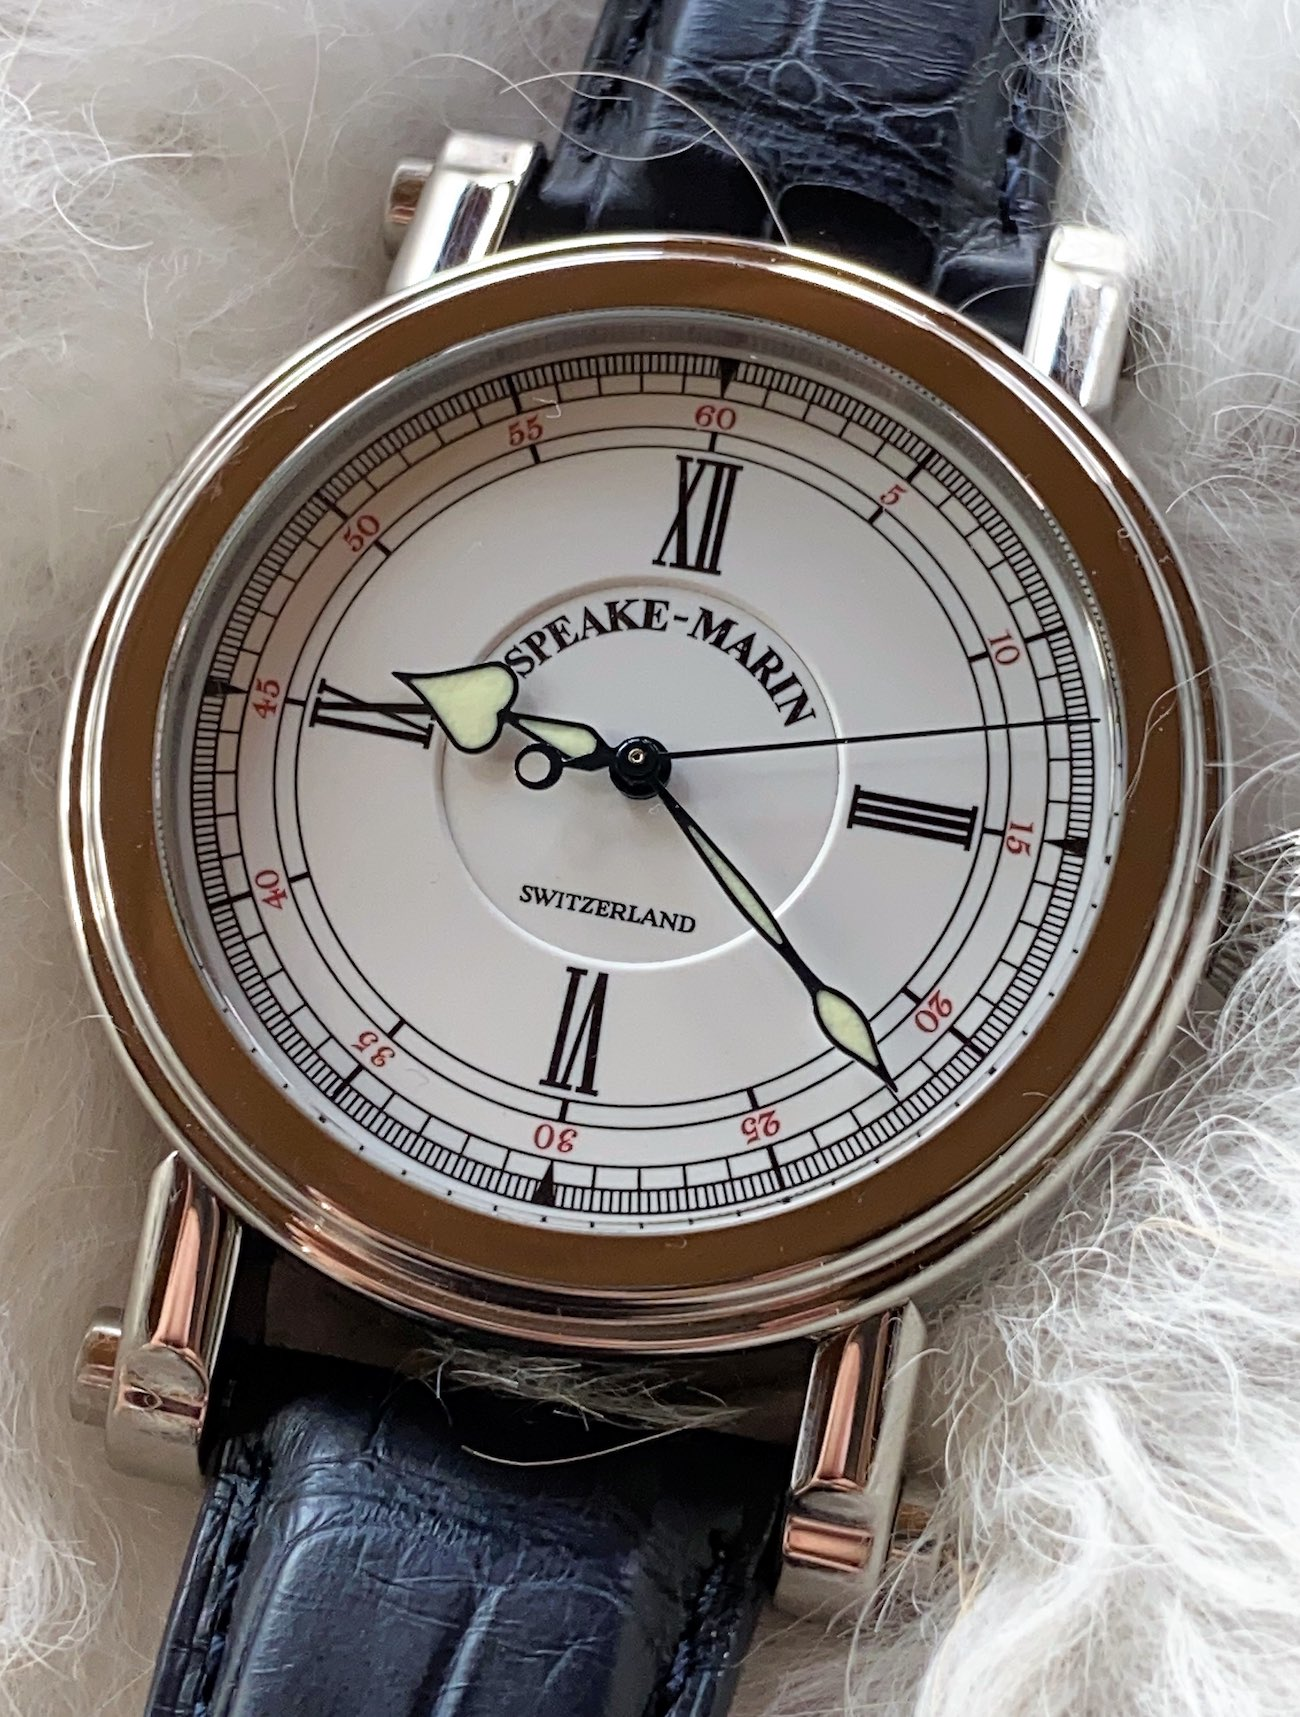 The Collectors Series - Speake-Marin Marin 1 Mk1